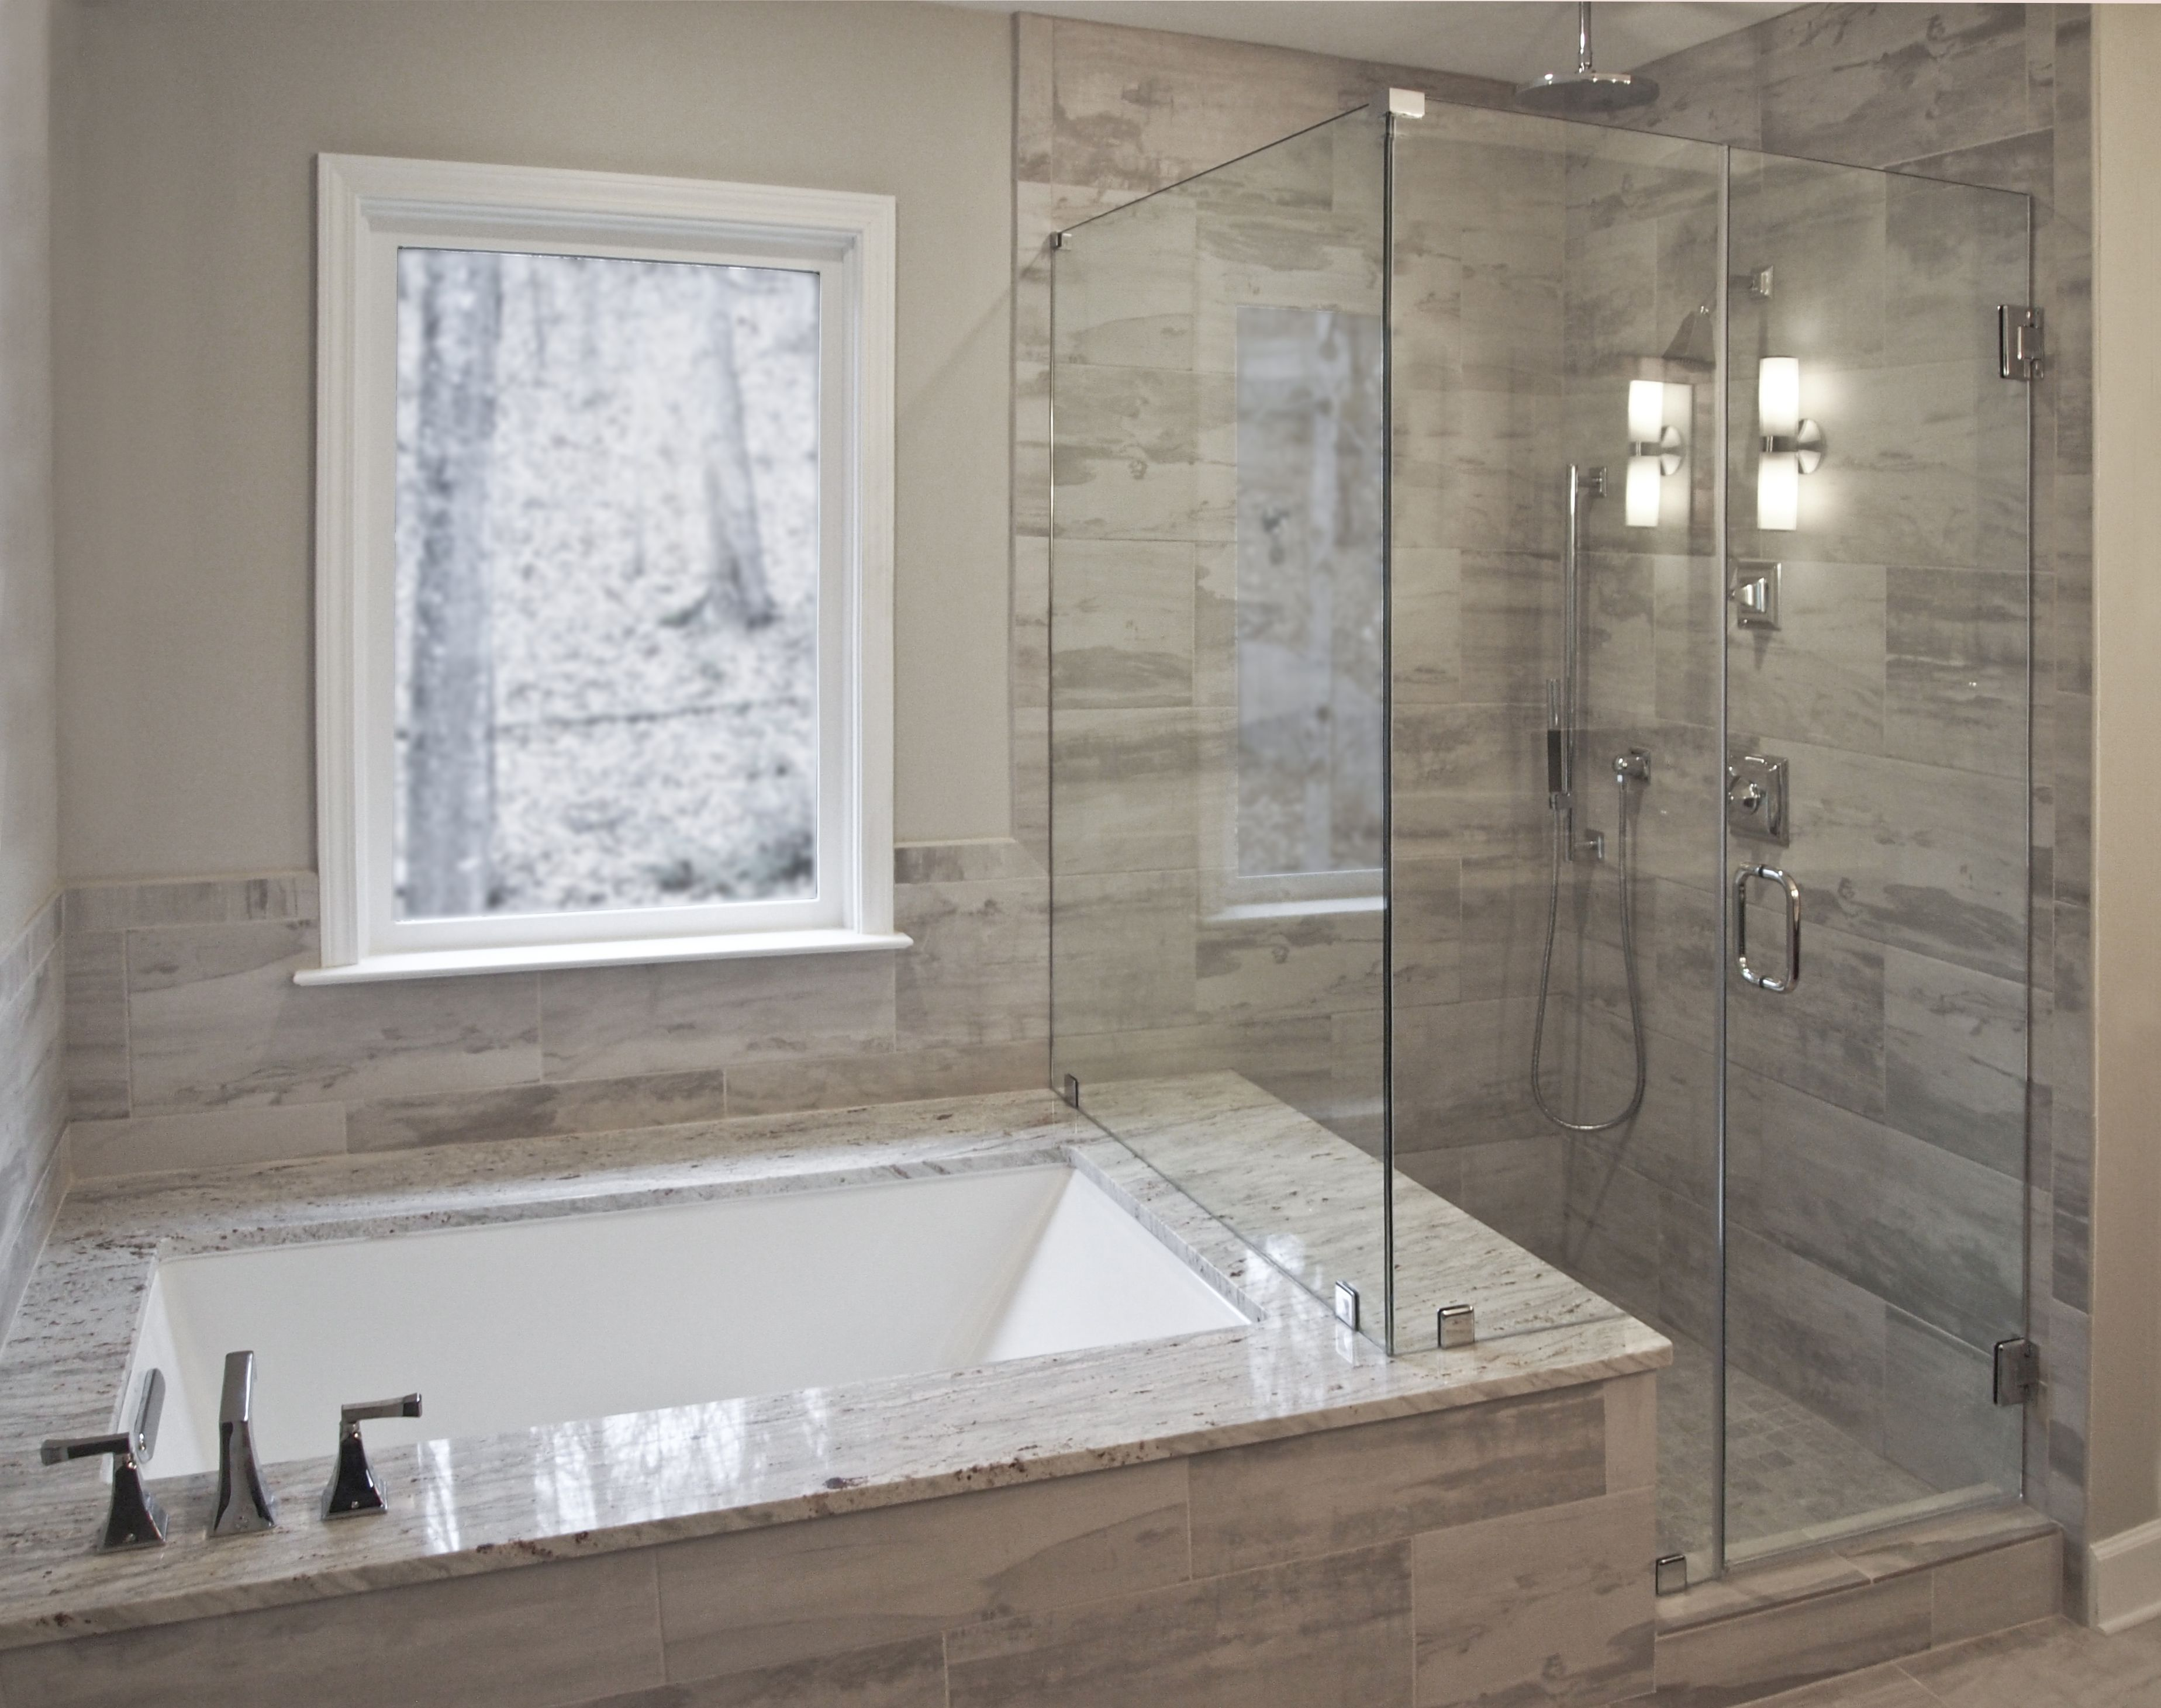 Bathroom remodel by Craftworks Contruction. Glass enclosed ...